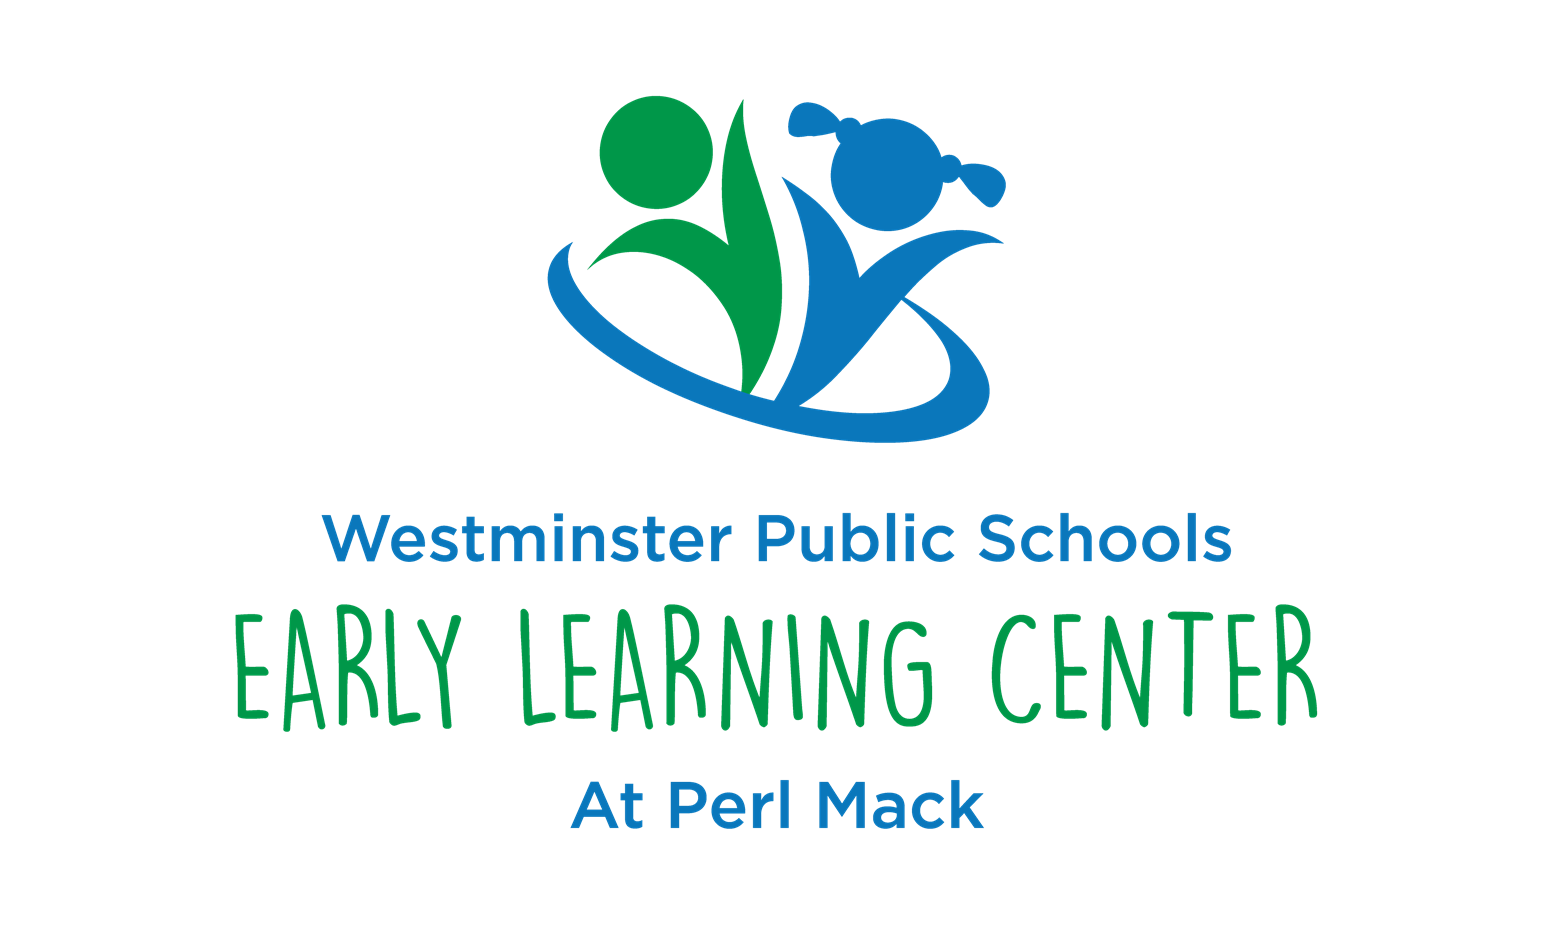 Westminster Public Schools Early Learning Center at Perl Mack logo